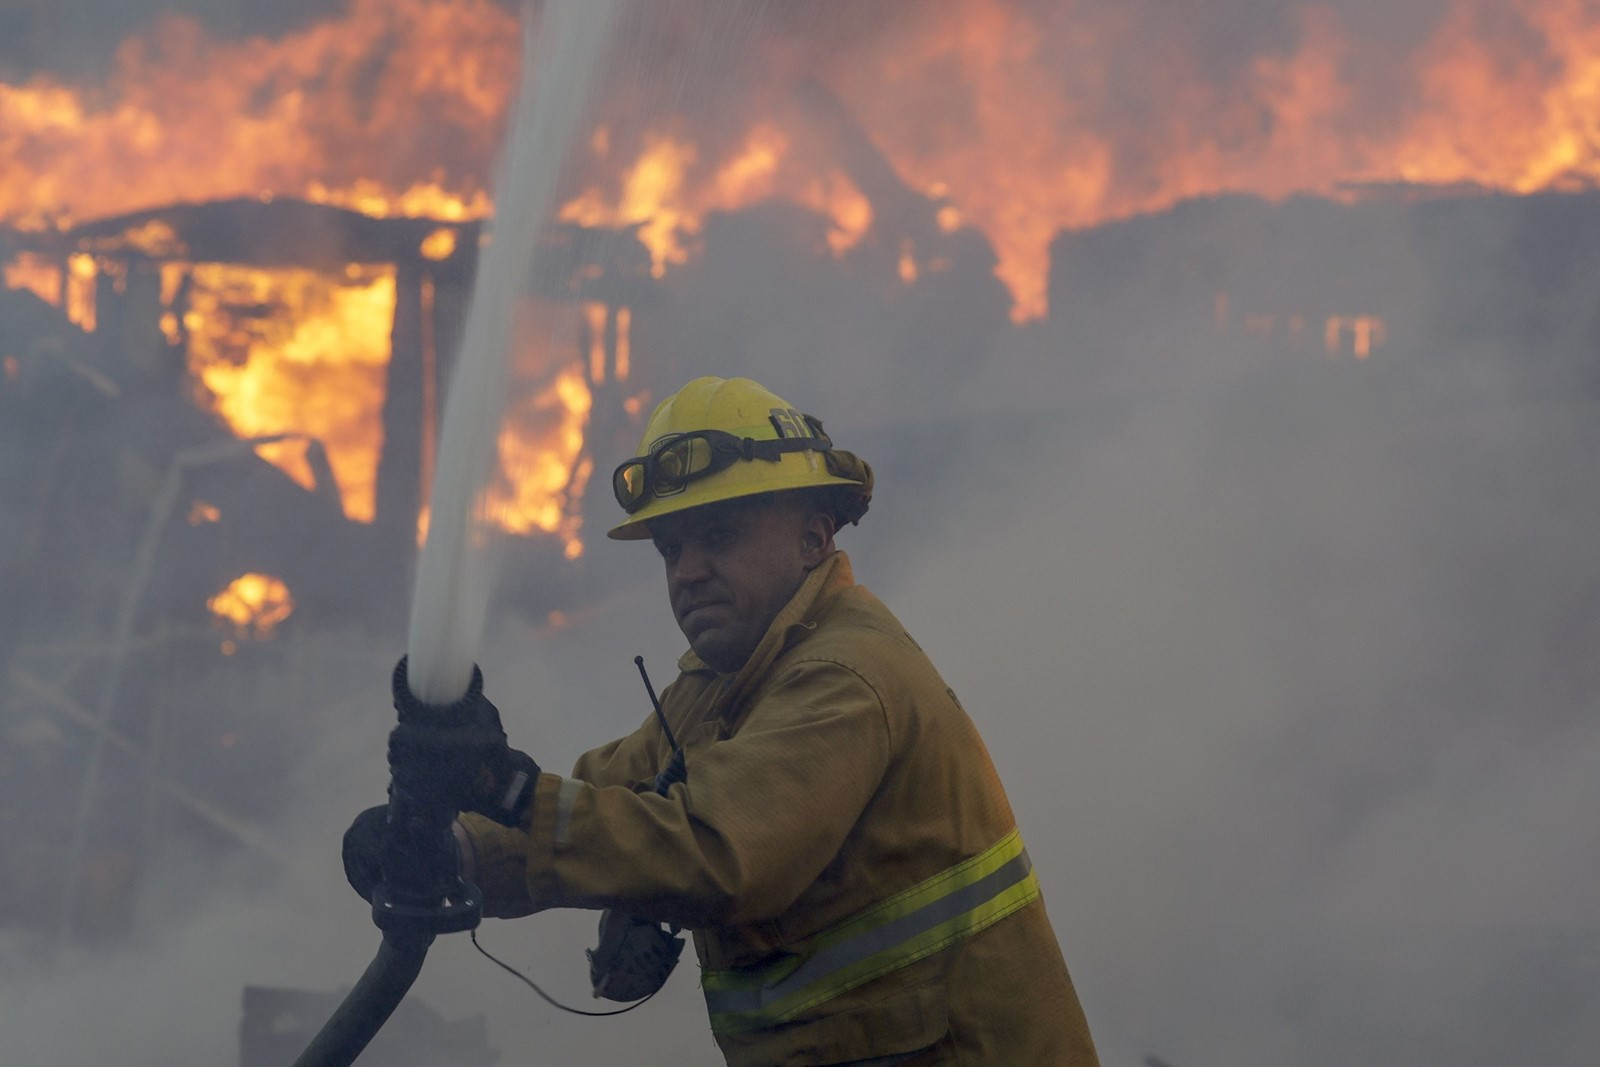 A firefighter works against the Creek fire in the Shadow Hills area of Los Angeles as a structure burns in the background. — Photograph: Irfan Khan/Los Angeles Times.